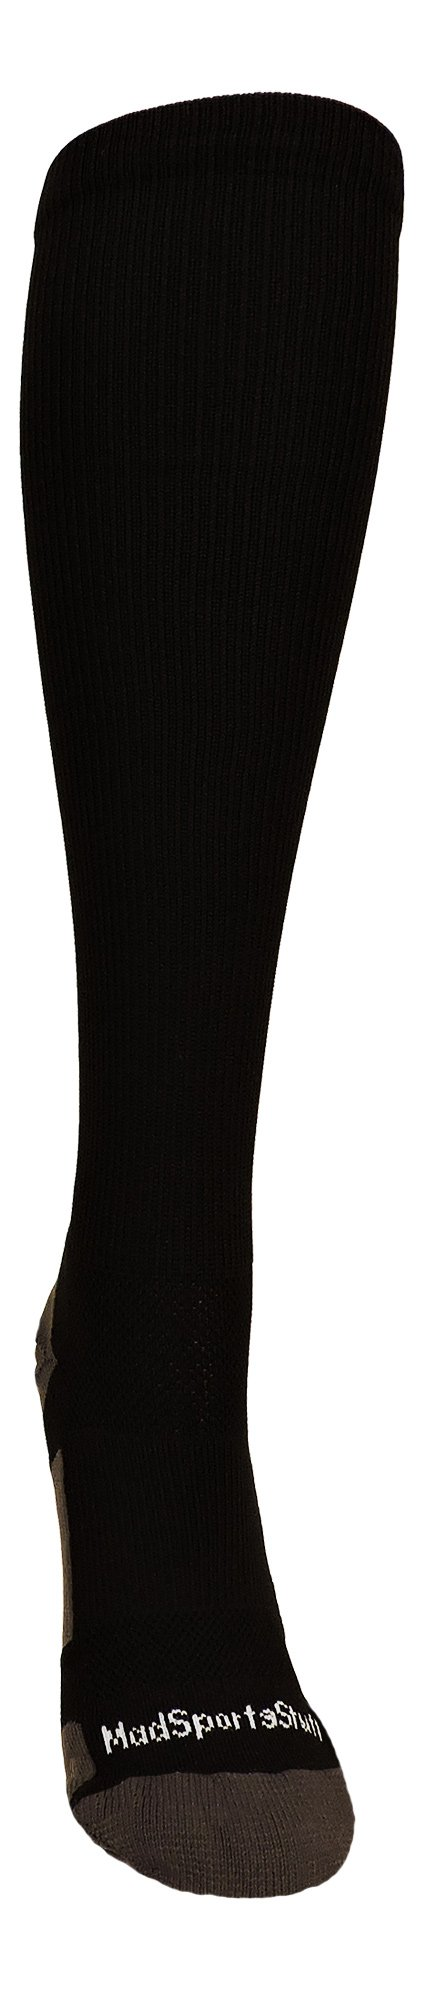 MadSportsStuff Player Id Black/White Over The Calf Number Socks (#07, Small) by MadSportsStuff (Image #2)